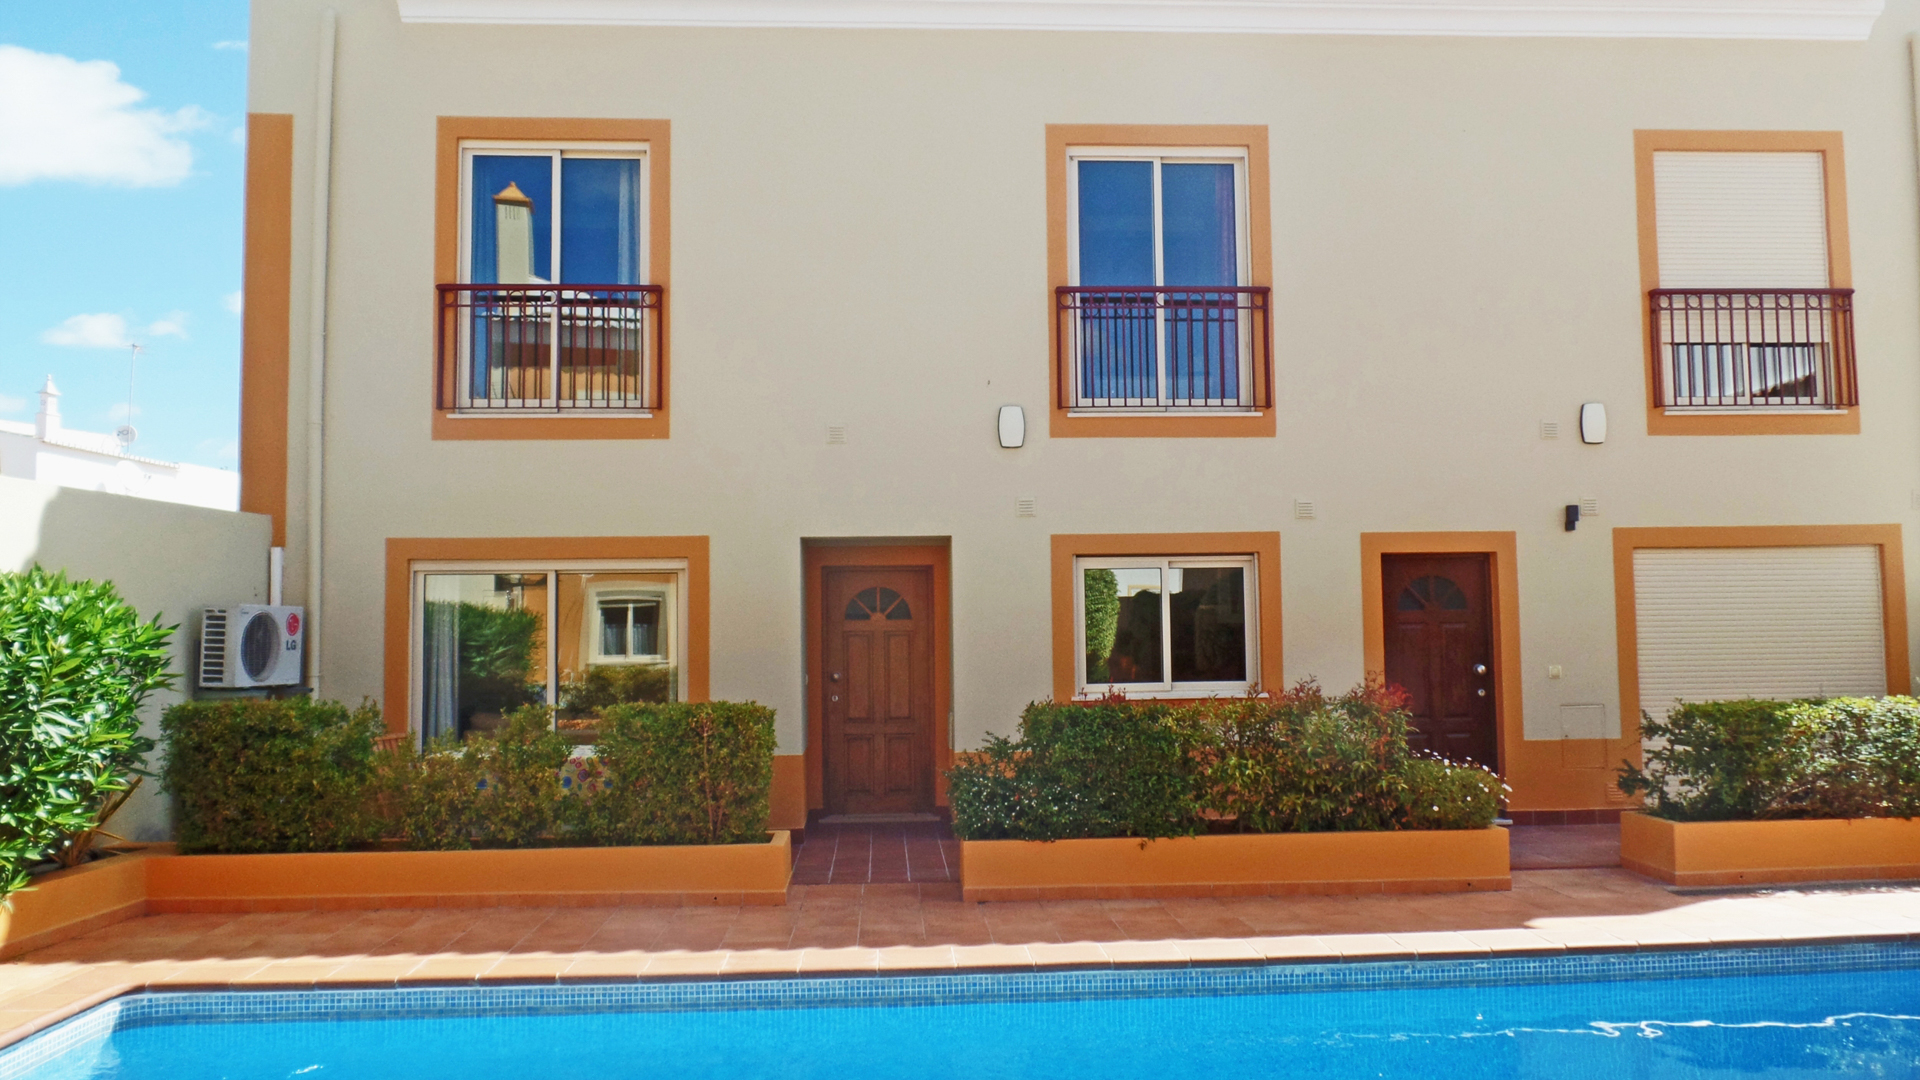 2 bedroom townhouse in small complex with communal pool in budens, west algarve